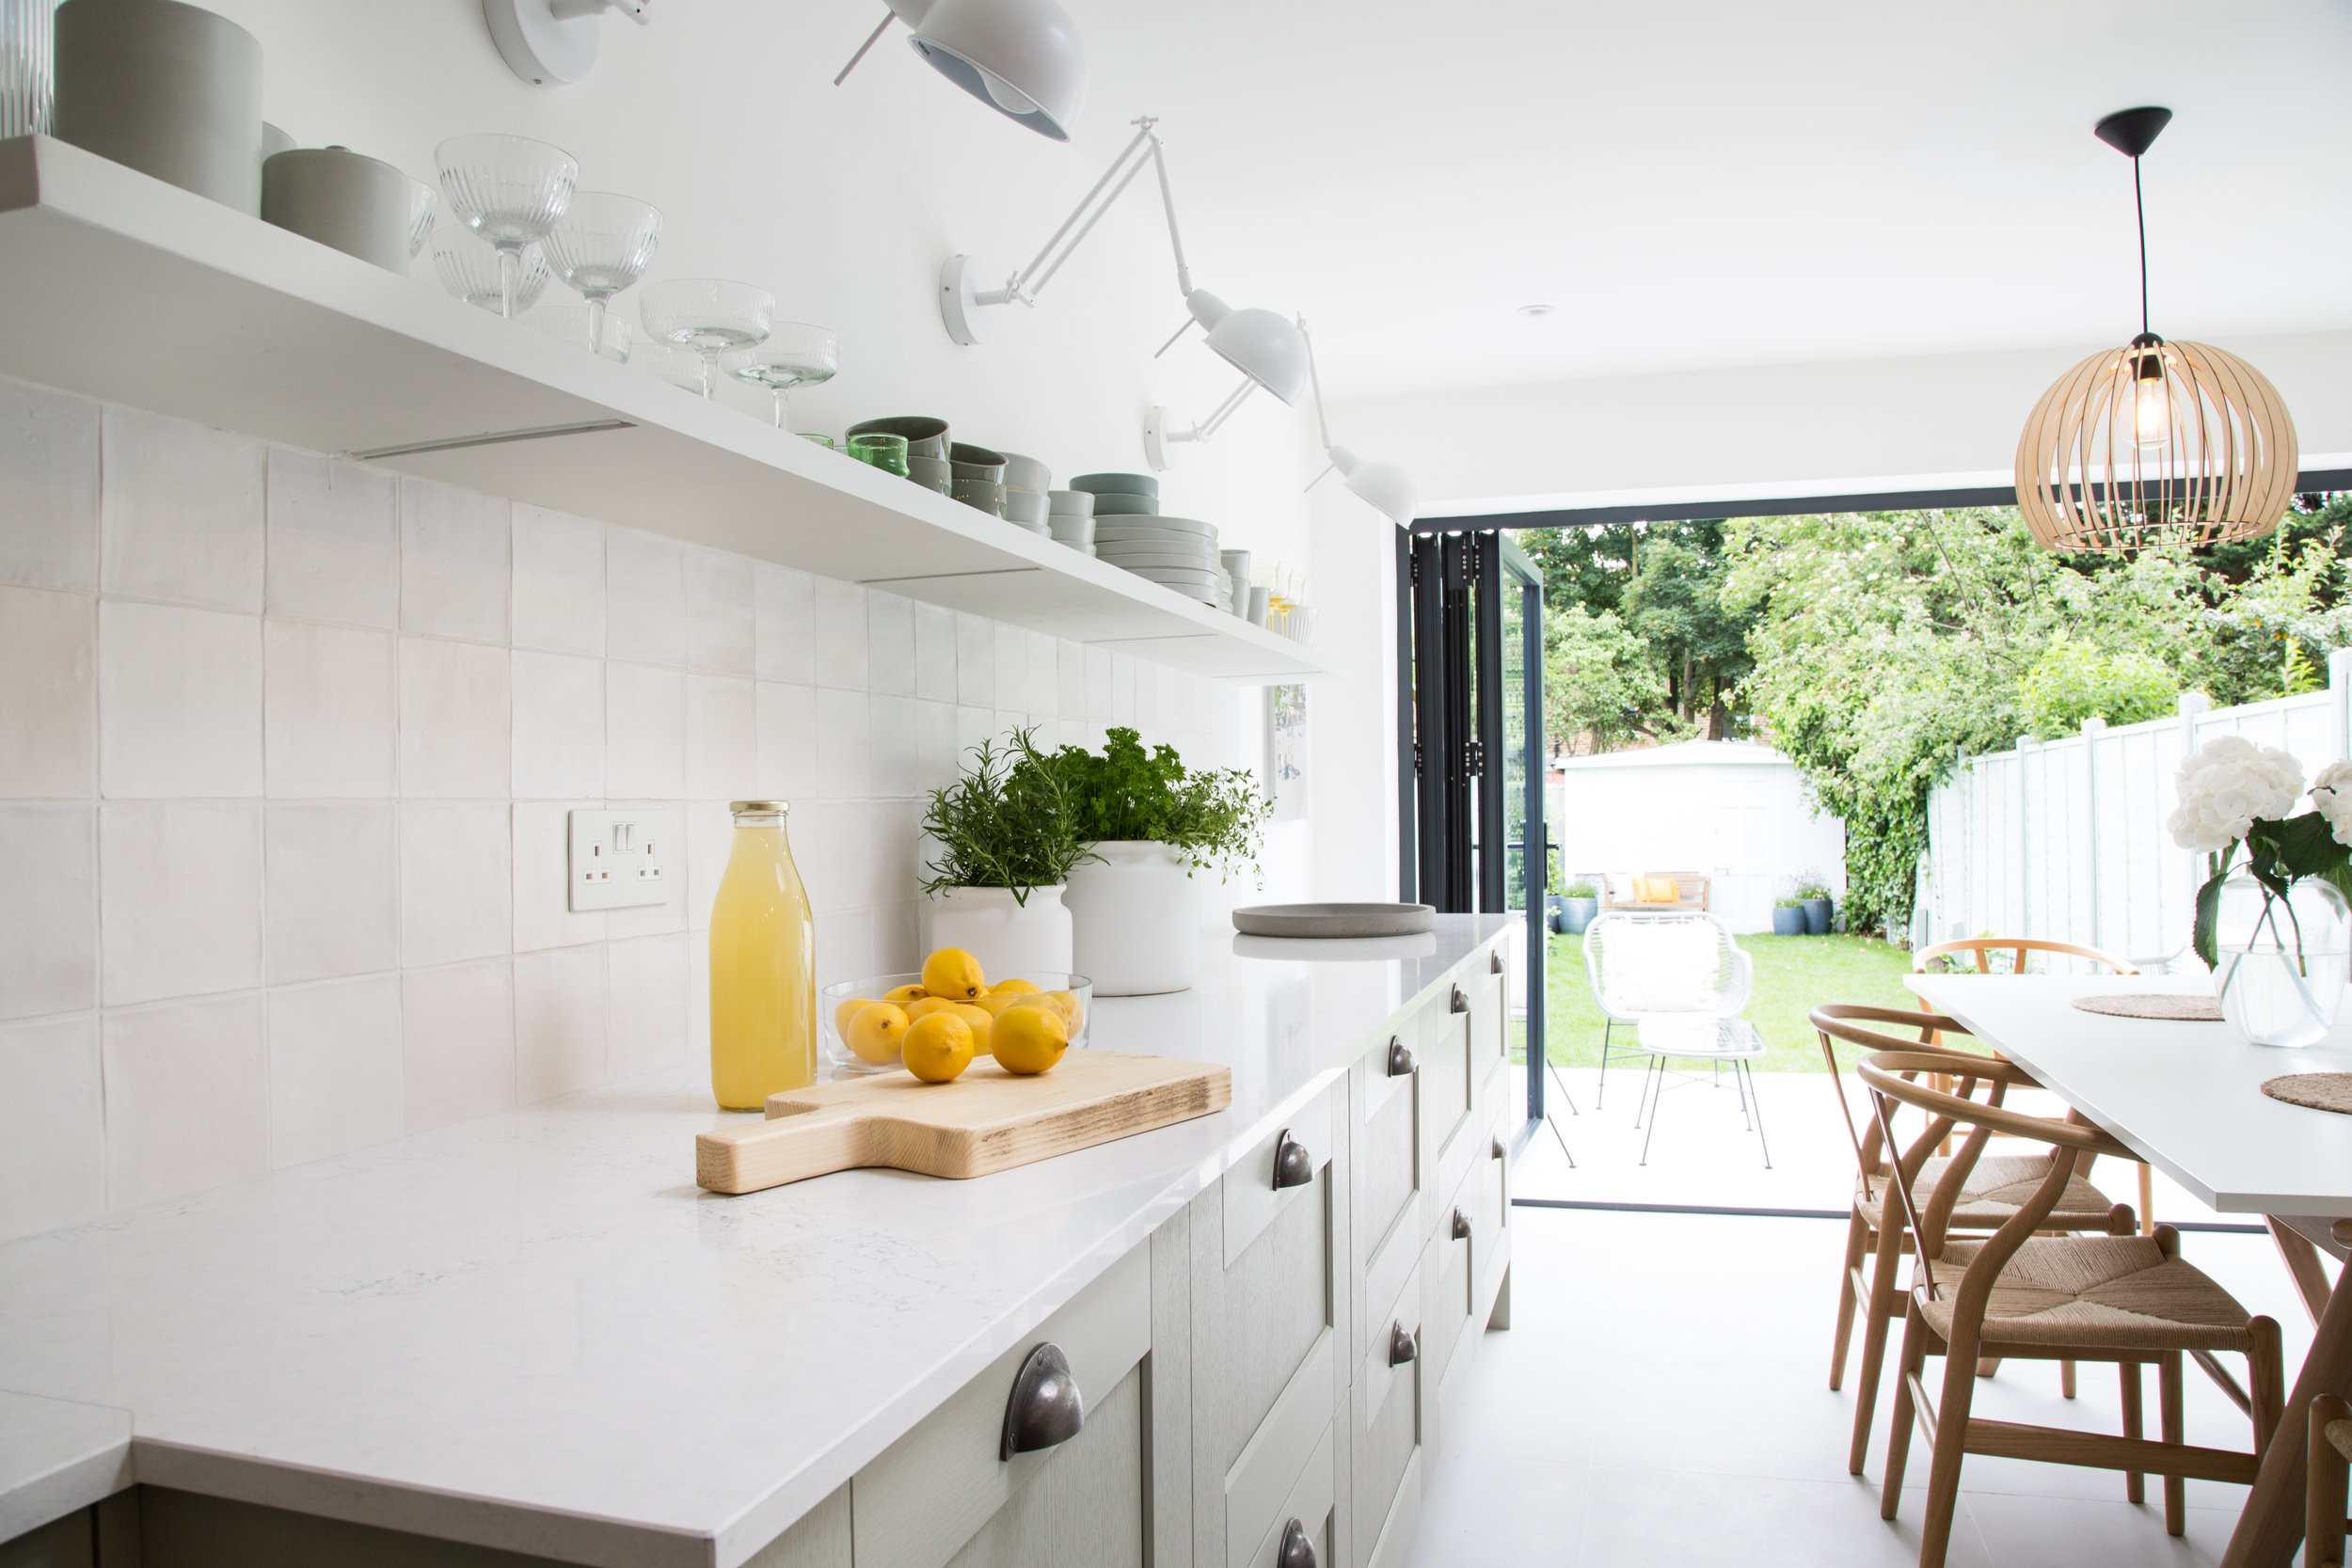 Private residence, London - Our Zellige Matt white walls tiles and Limestone Pearl 60x60cm floor tiles were used in this private London home. This project was featured on George Clarke's amazing spaces in 2019.